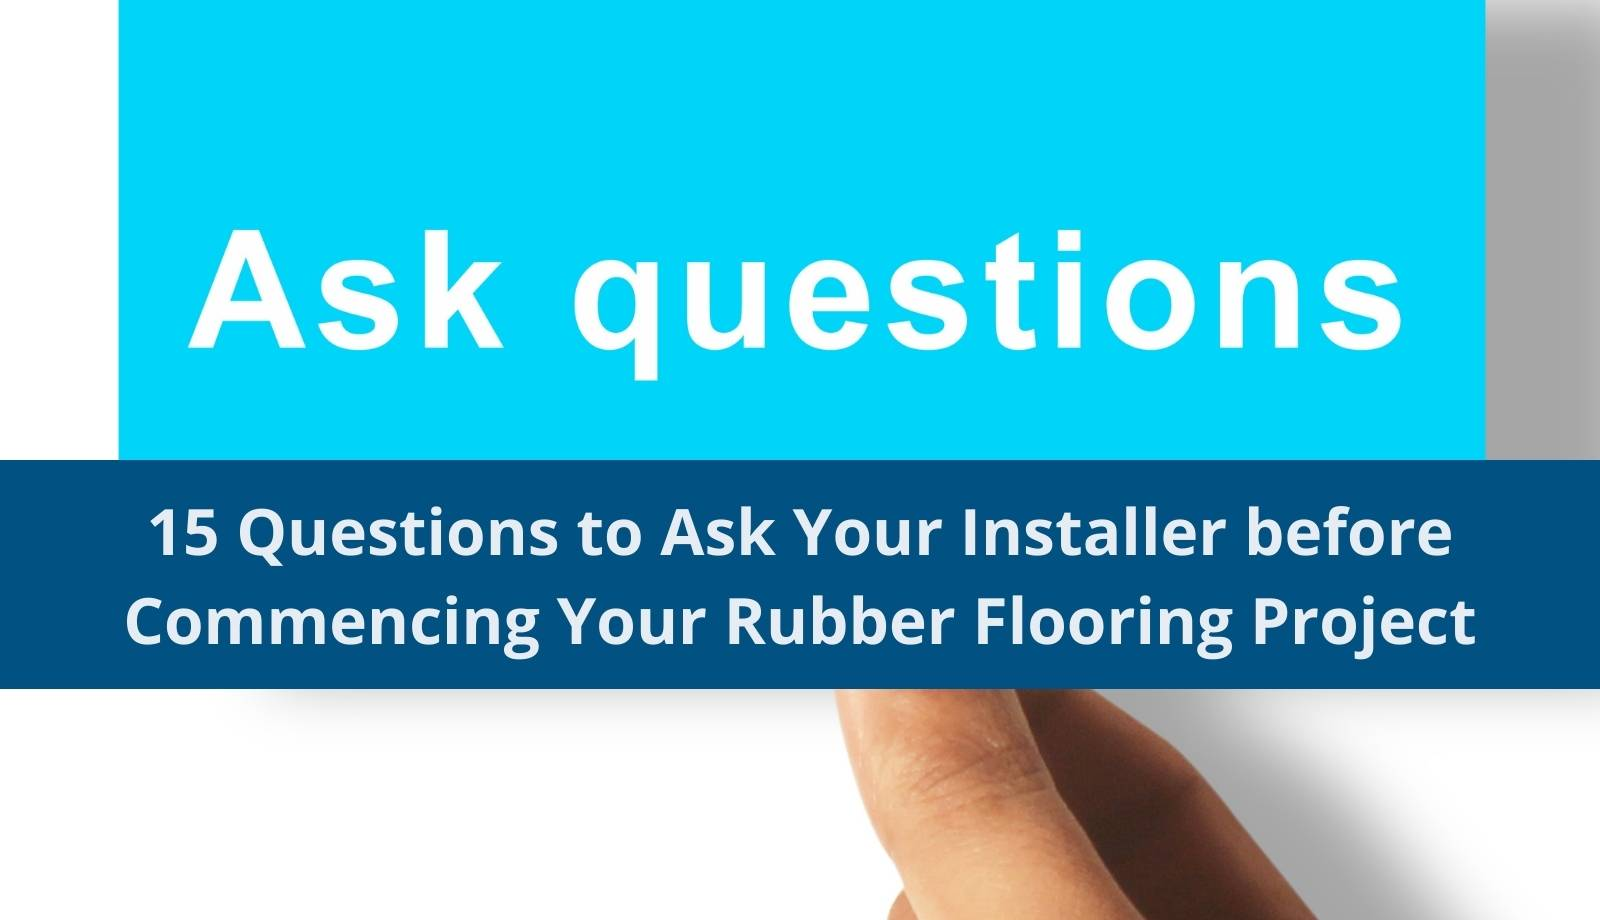 questions to ask for your rubber flooring project